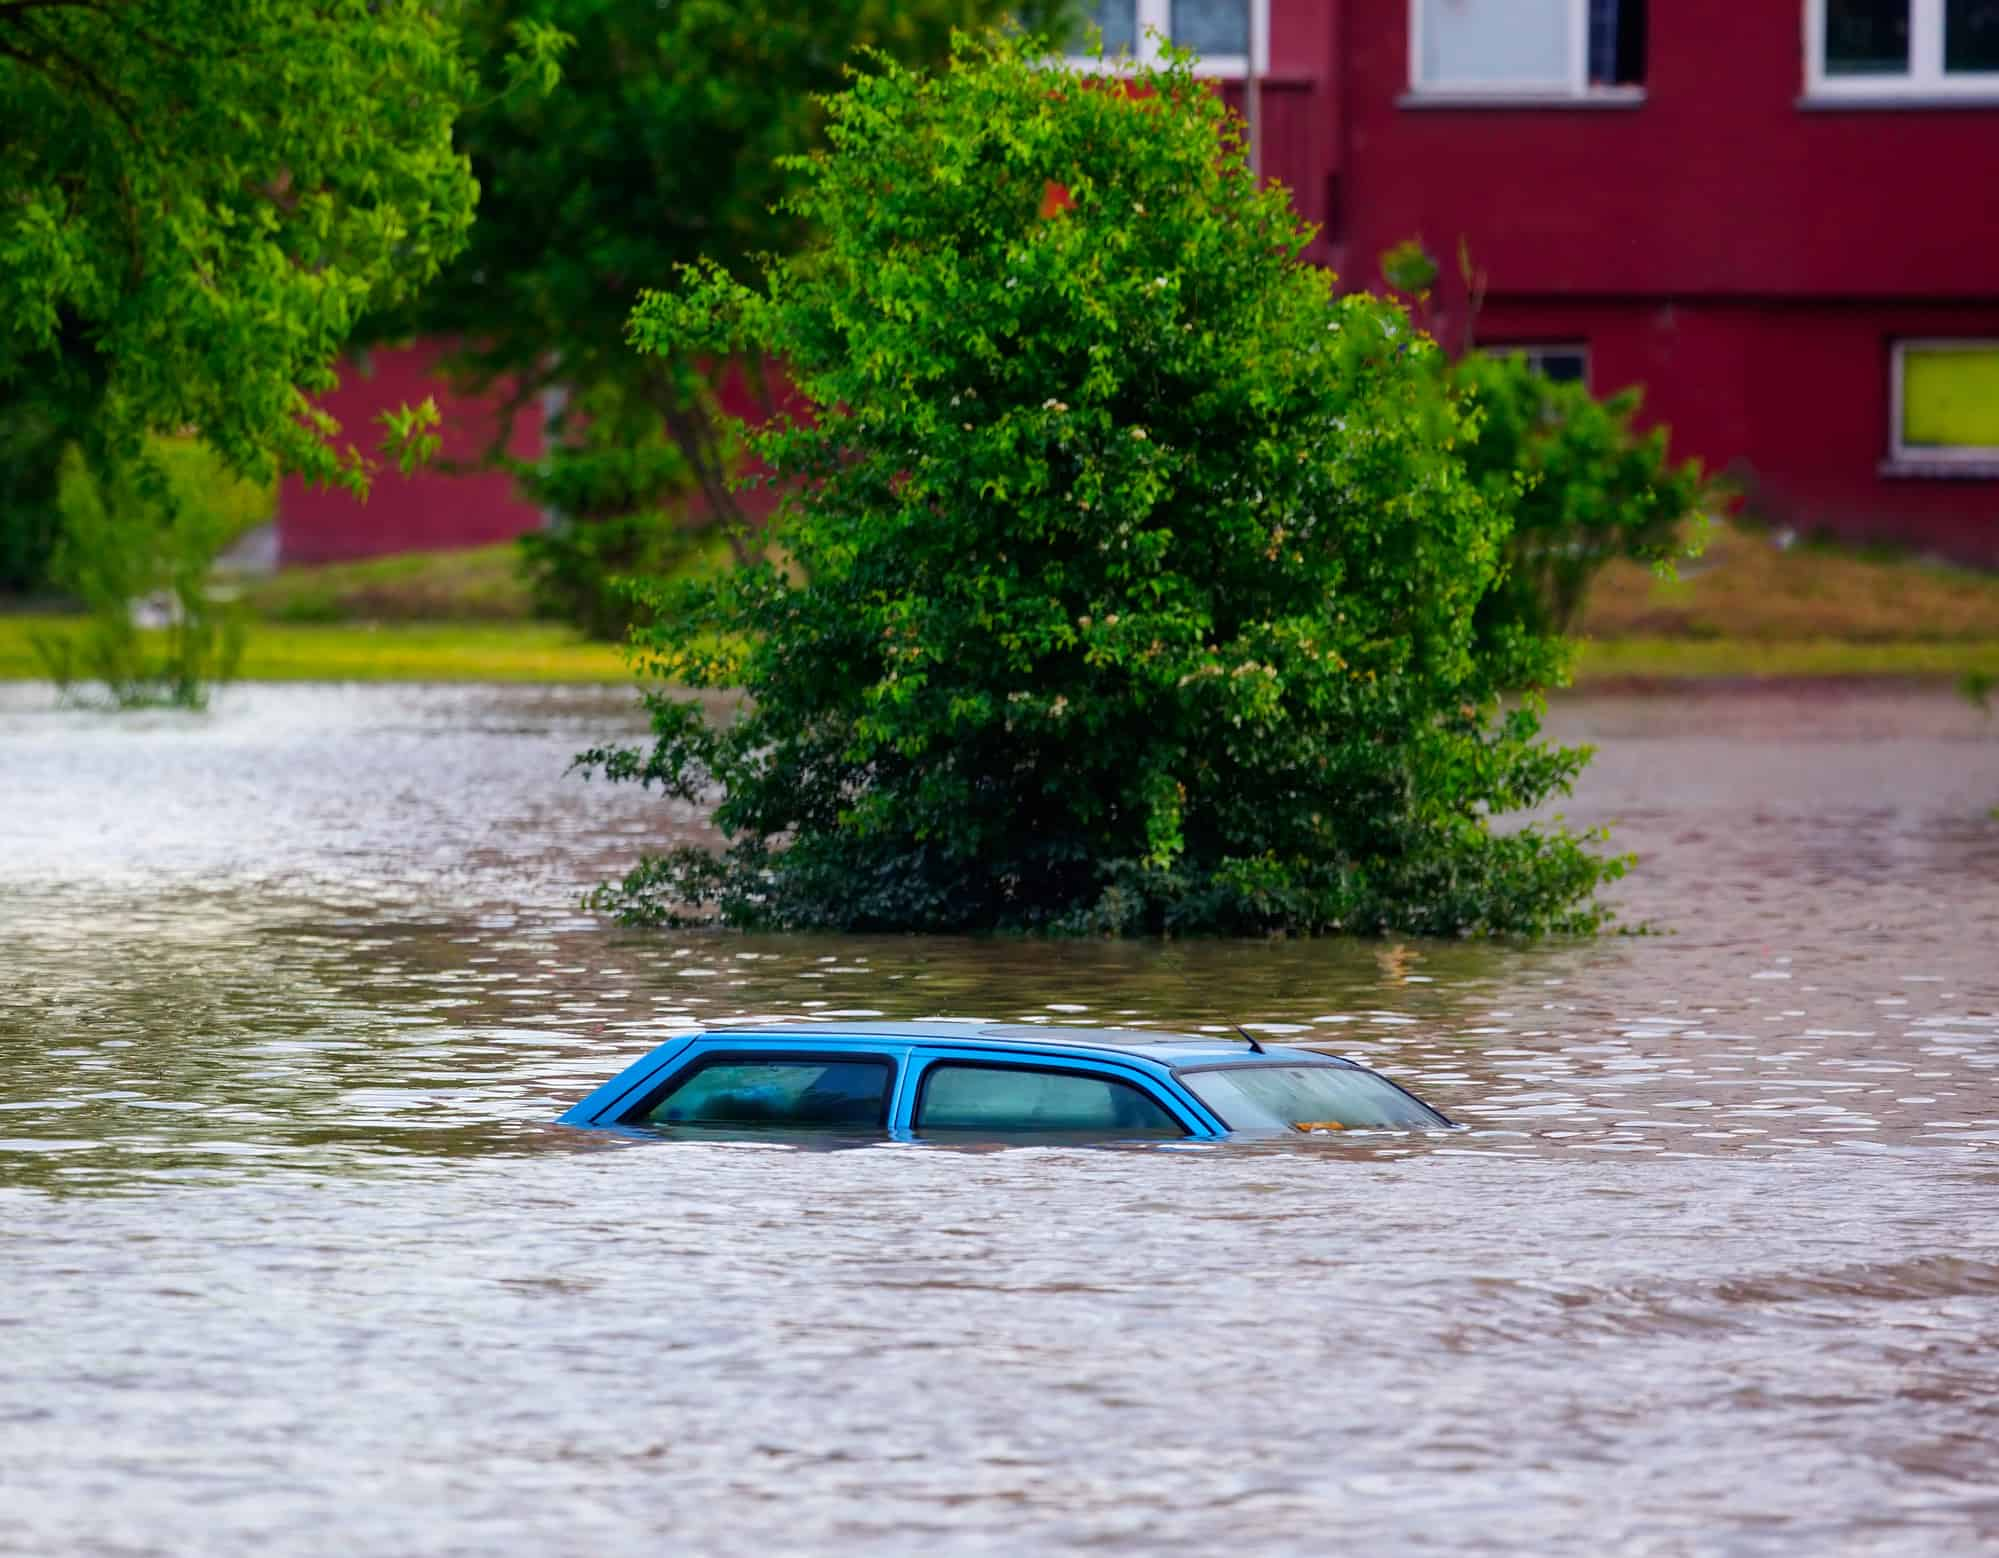 A very flooded area with only the top of a car visible